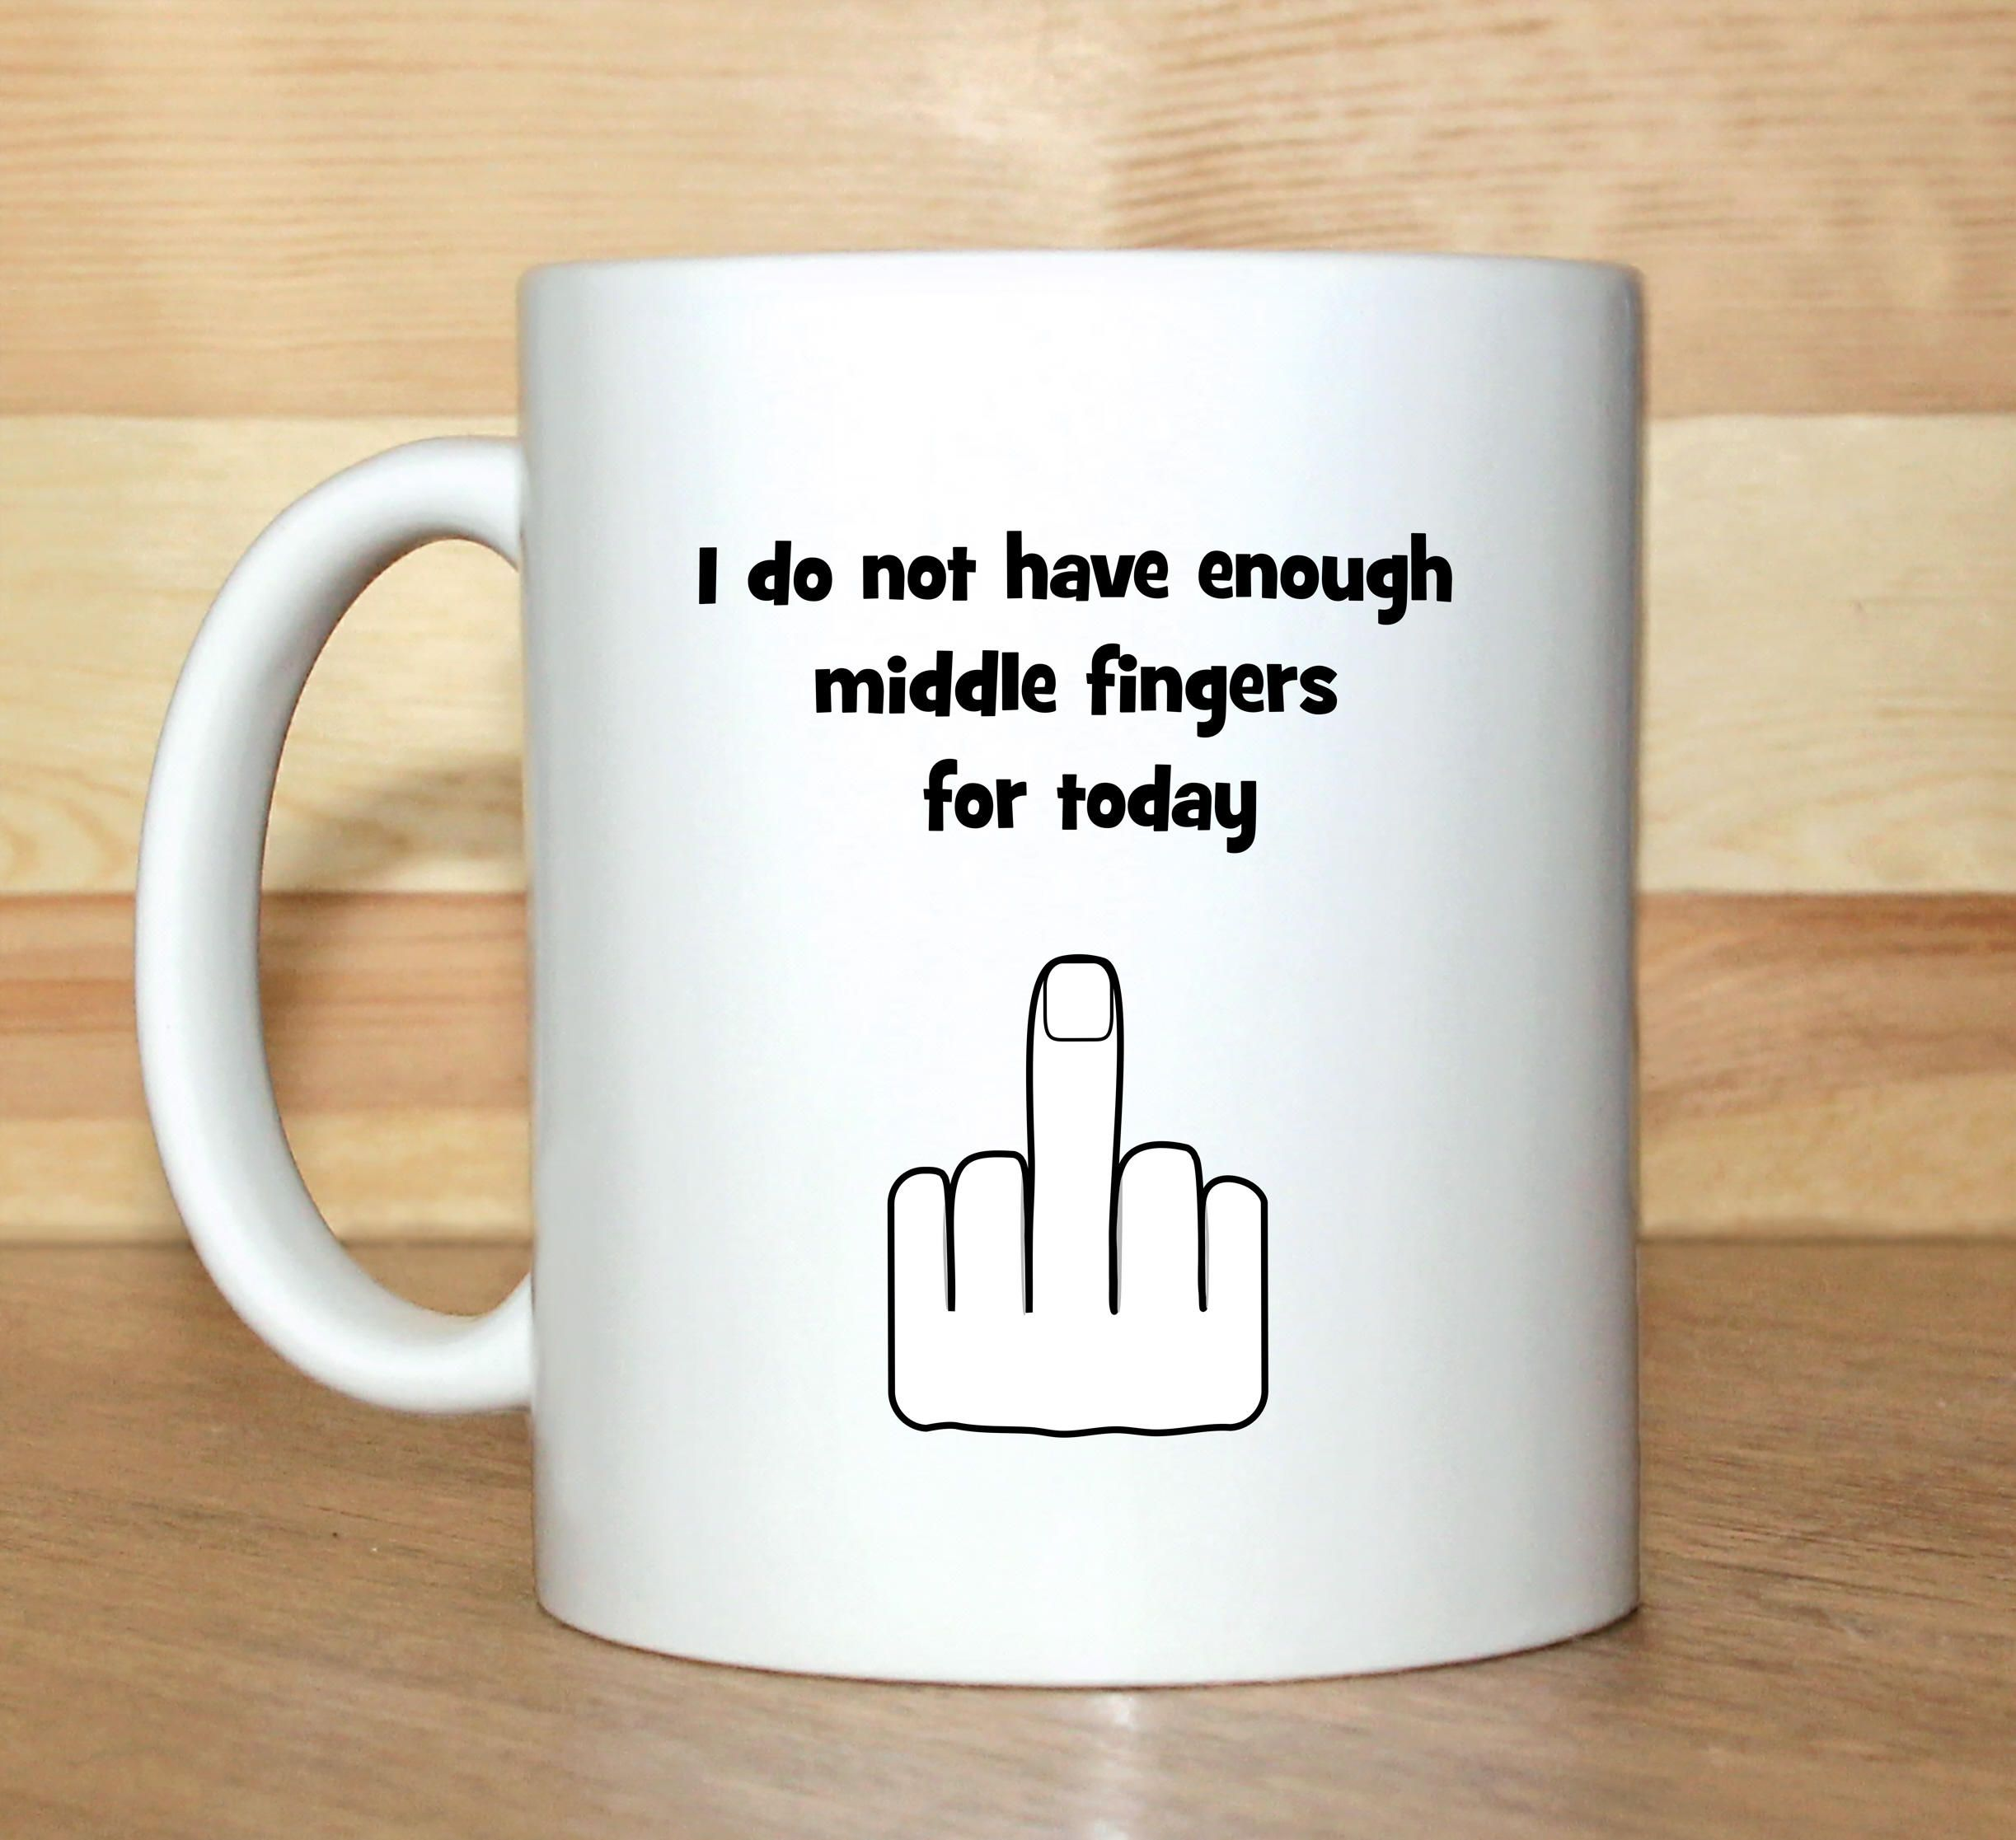 Superieur Middle Finger Mug, Mug With Saying, Funny Mug, Birthday Mugs,  Funny